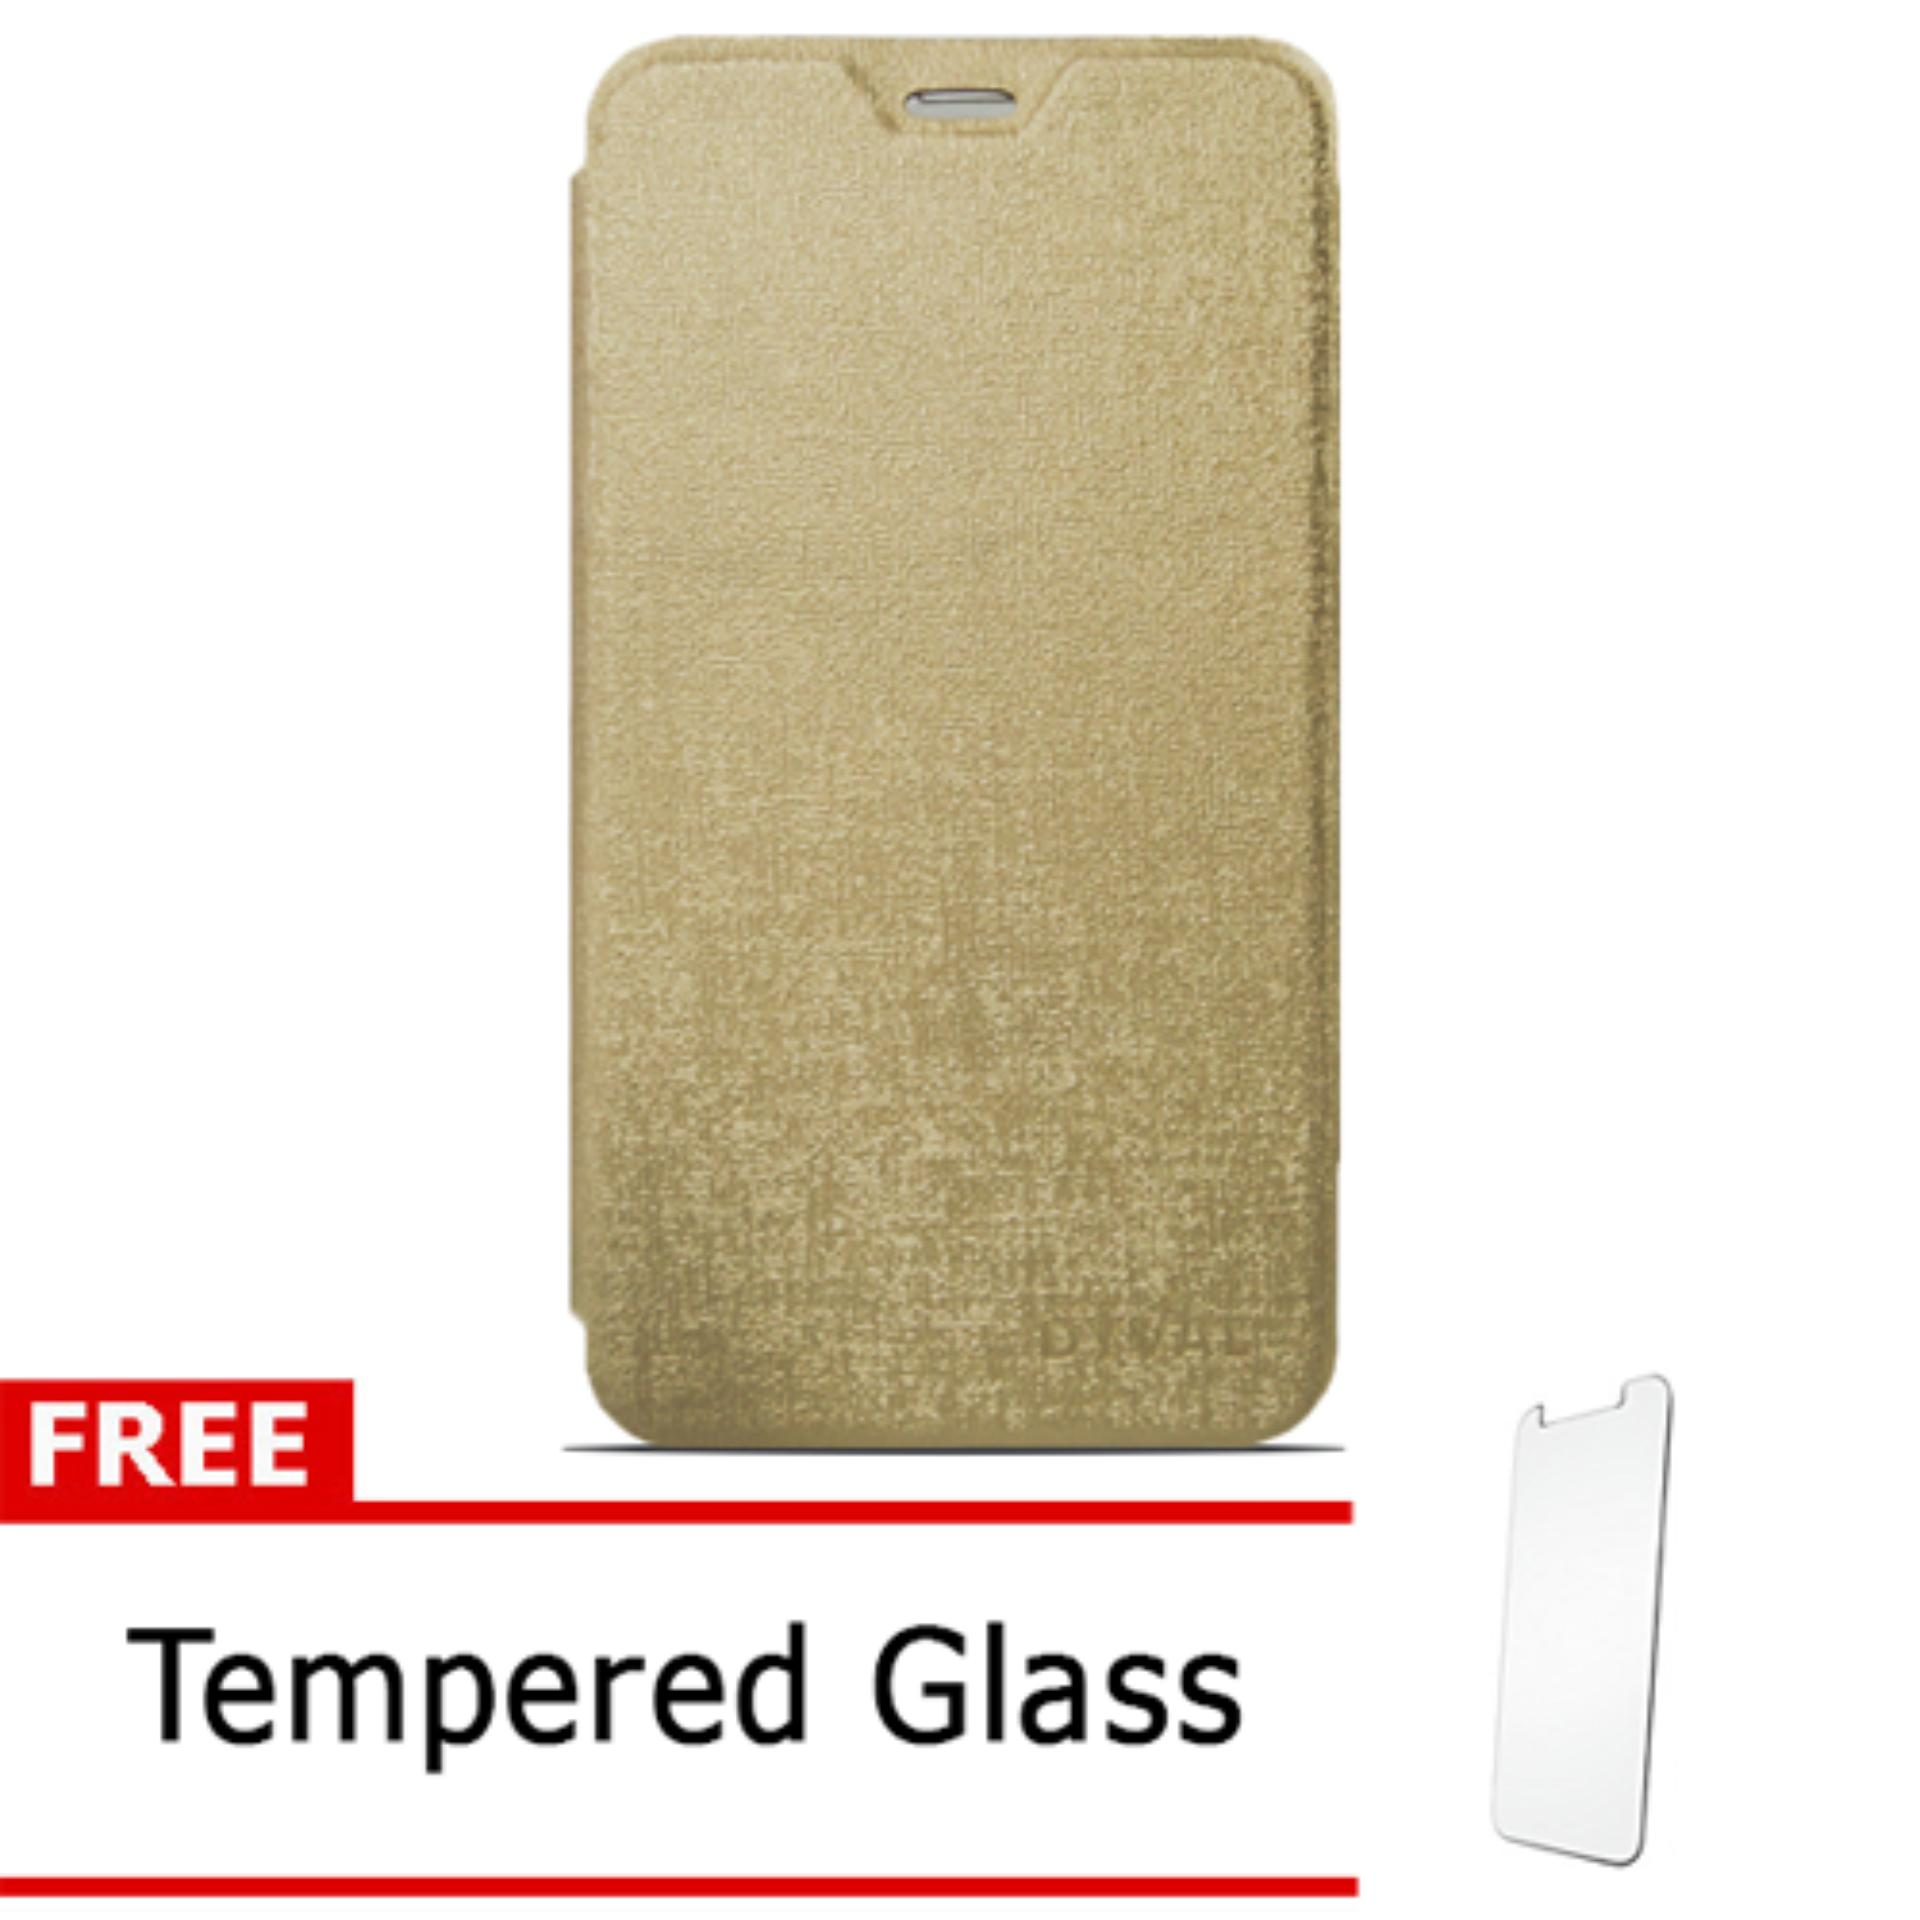 Case Dyval Flipcover Advan vandroid  i5C plus gold + free tempered glass